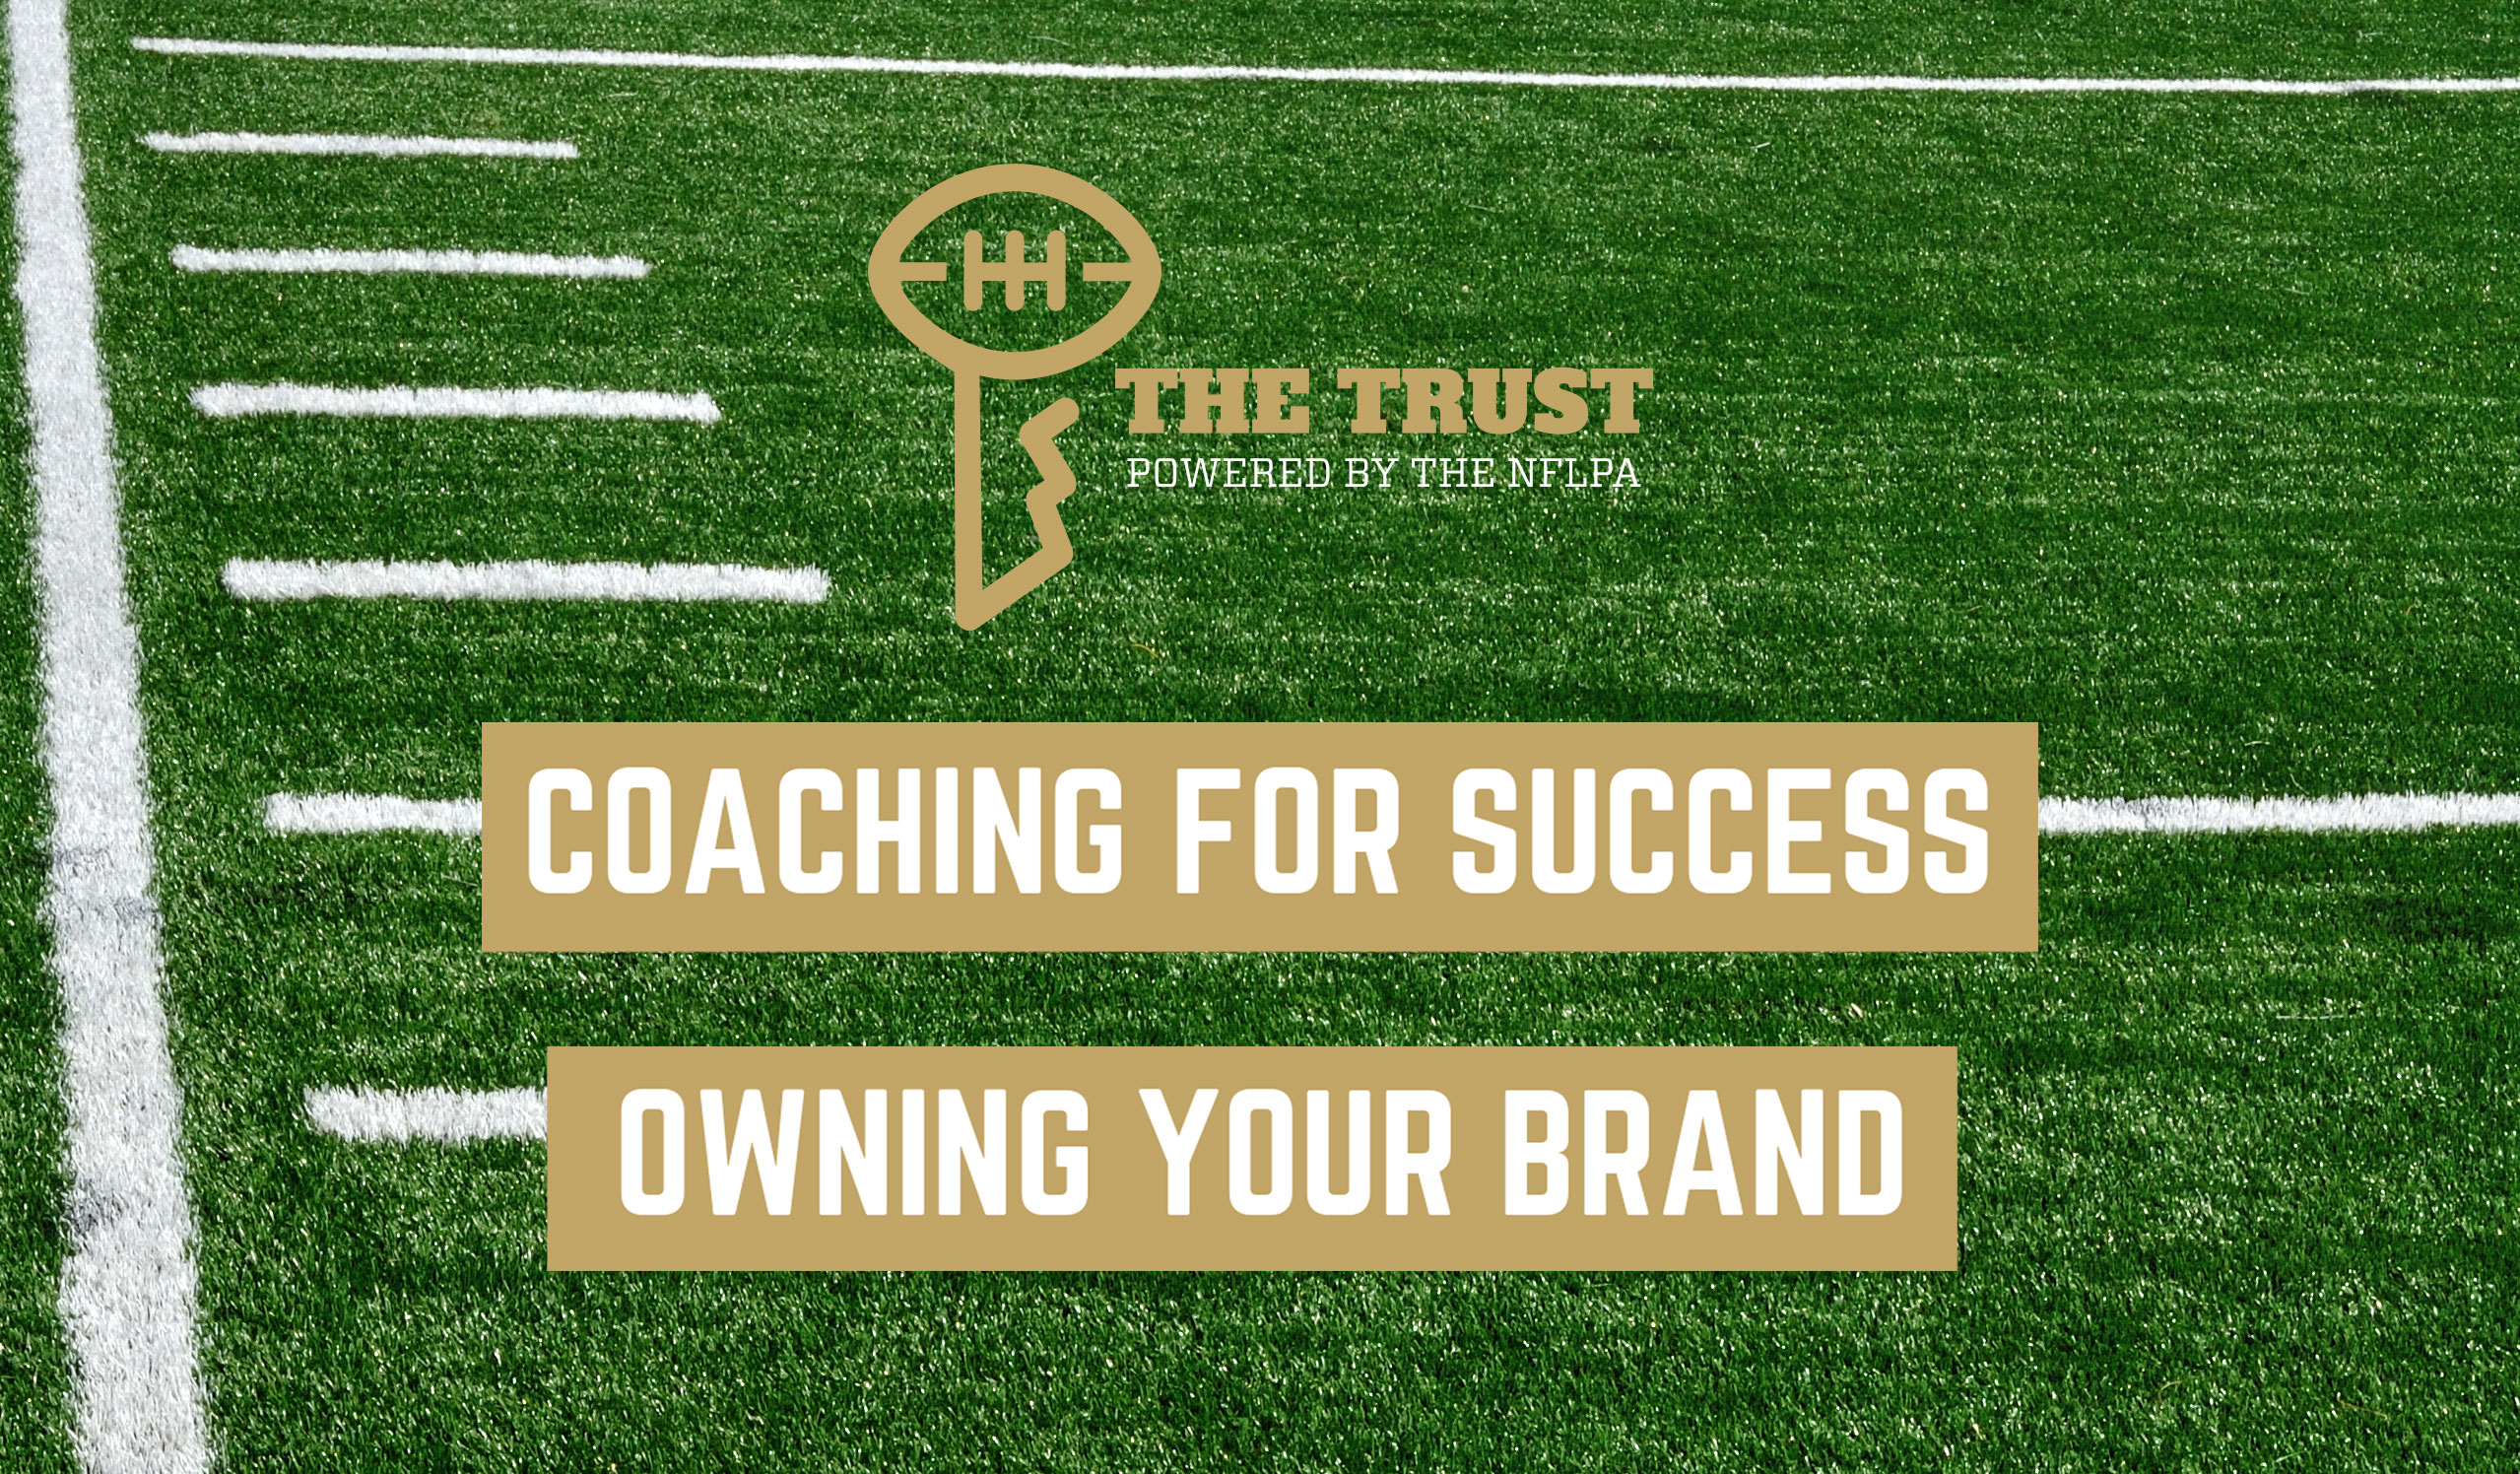 Coaching for Success: Owning Your Brand